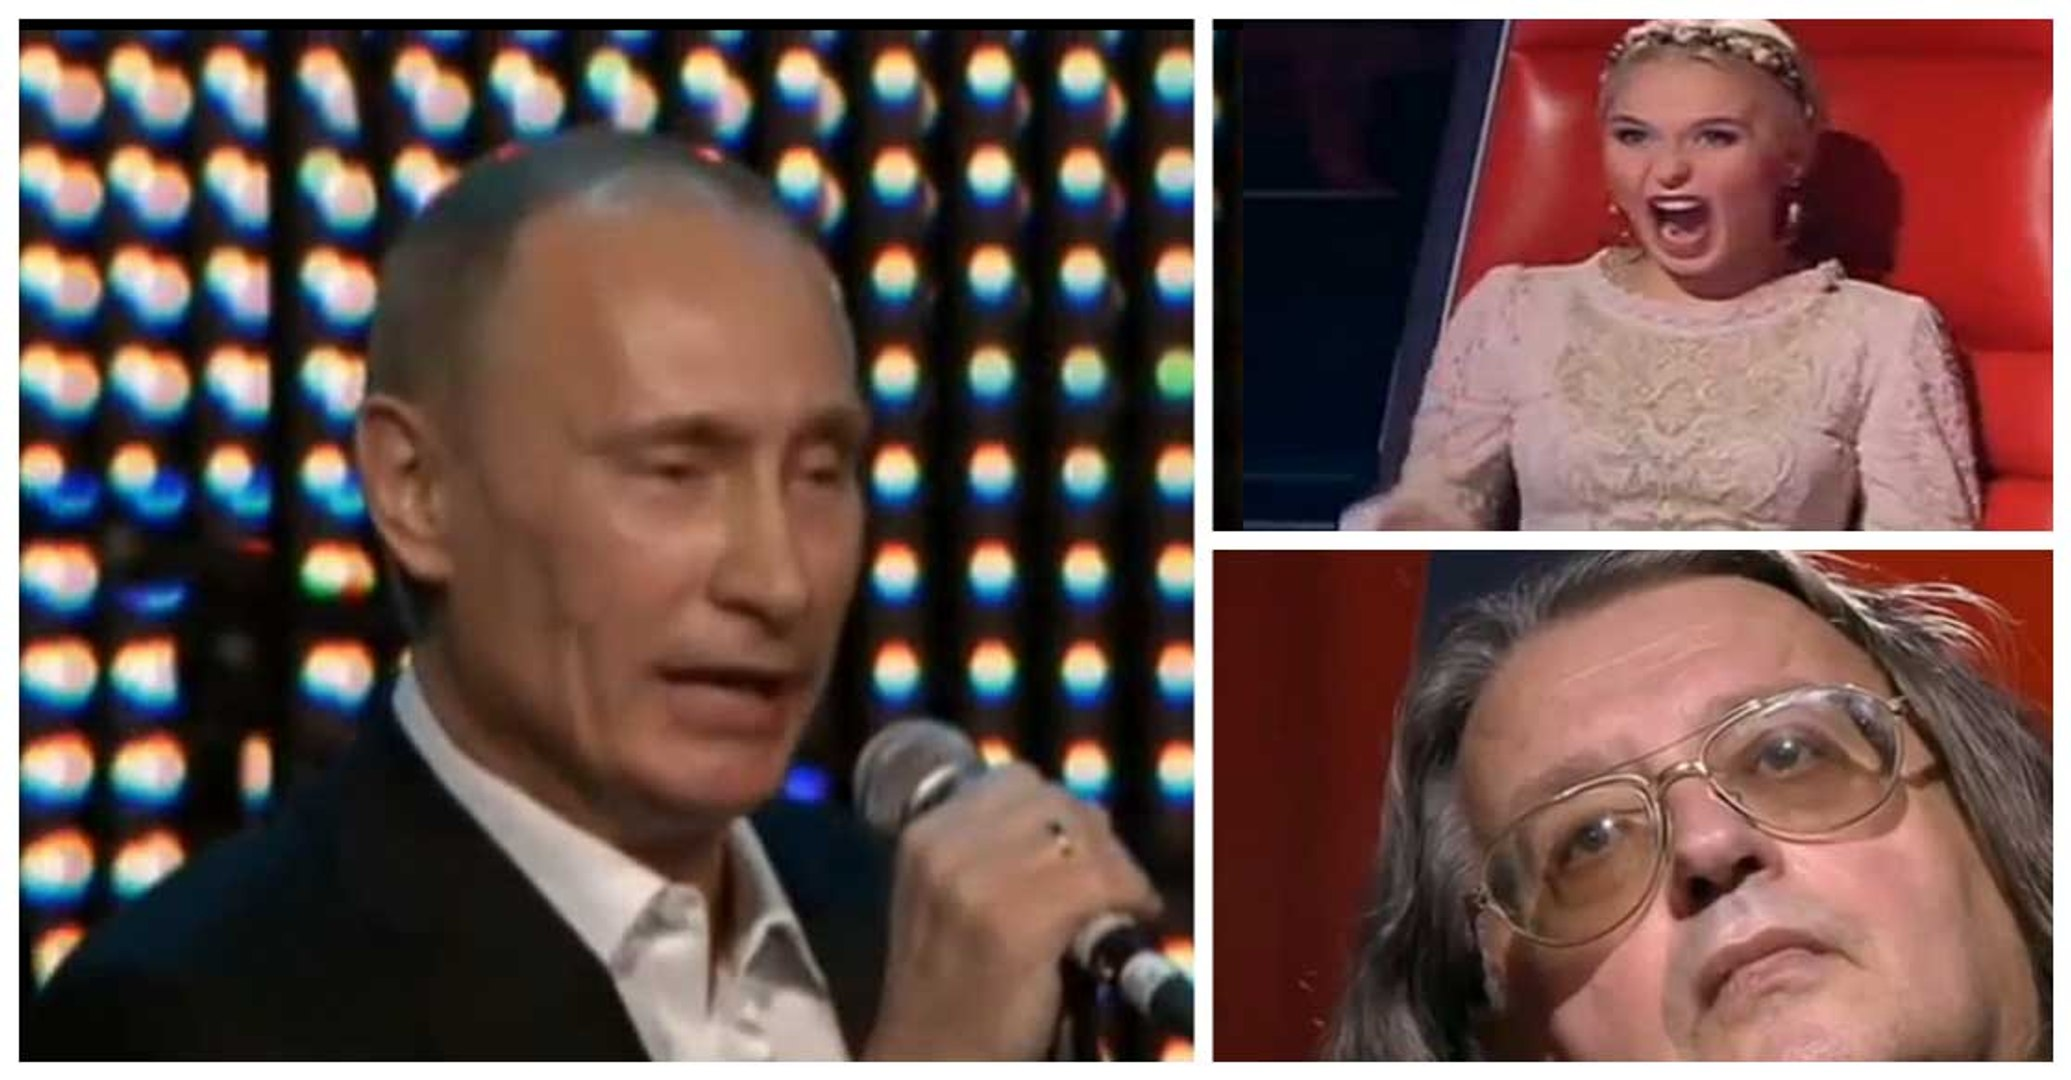 Vladimir Putin In The Voice Russia Sings Louis Armstrong S Blueberry Hill Video Dailymotion